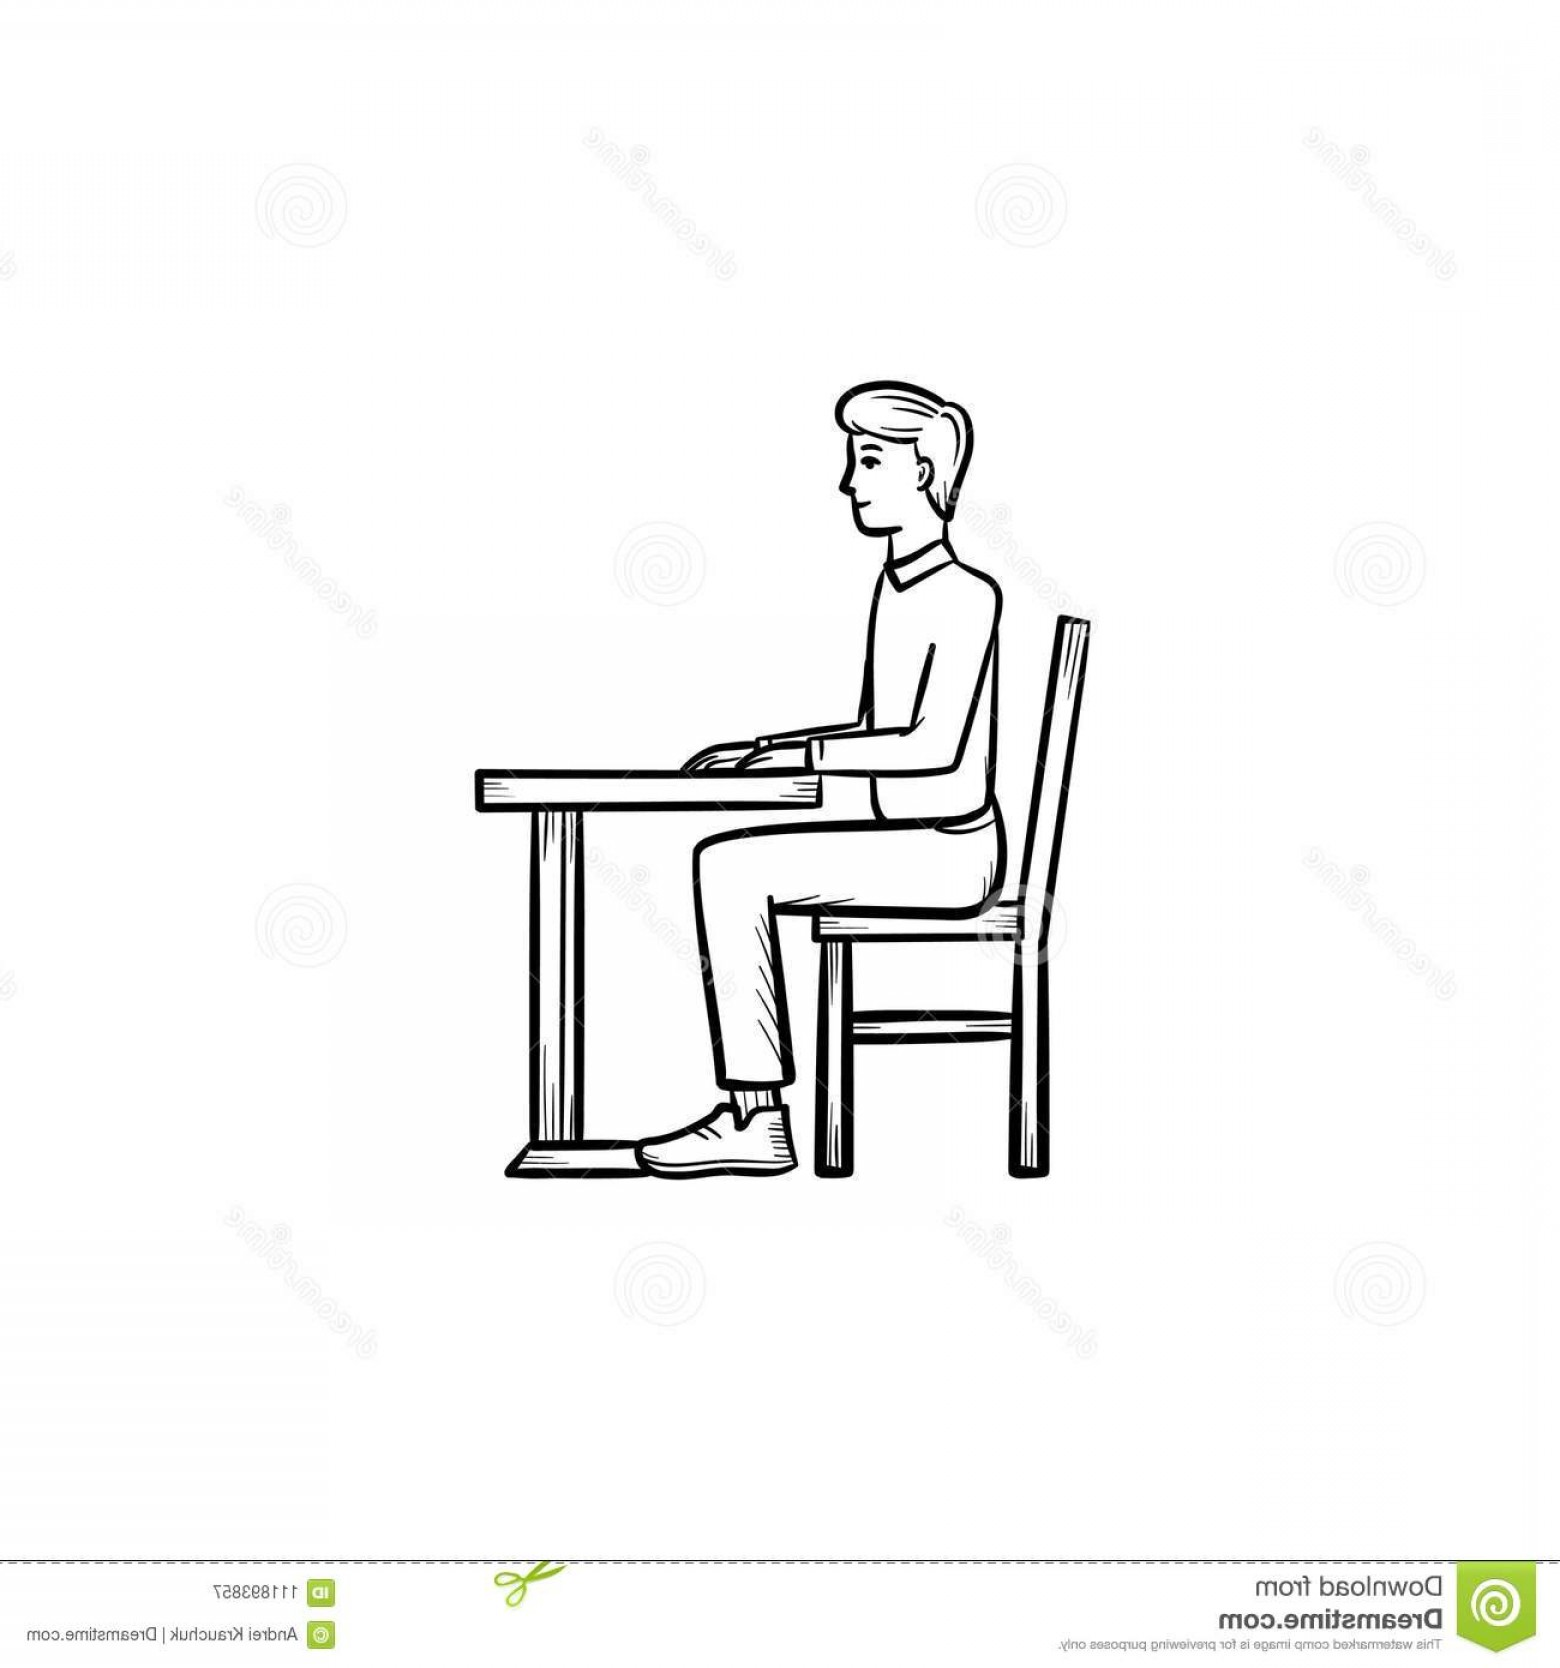 Student Desk Icon Vector: Student Sitting Desk Hand Drawn Sketch Icon Student Sitting Chair Desk Hand Drawn Outline Doodle Icon Person Image